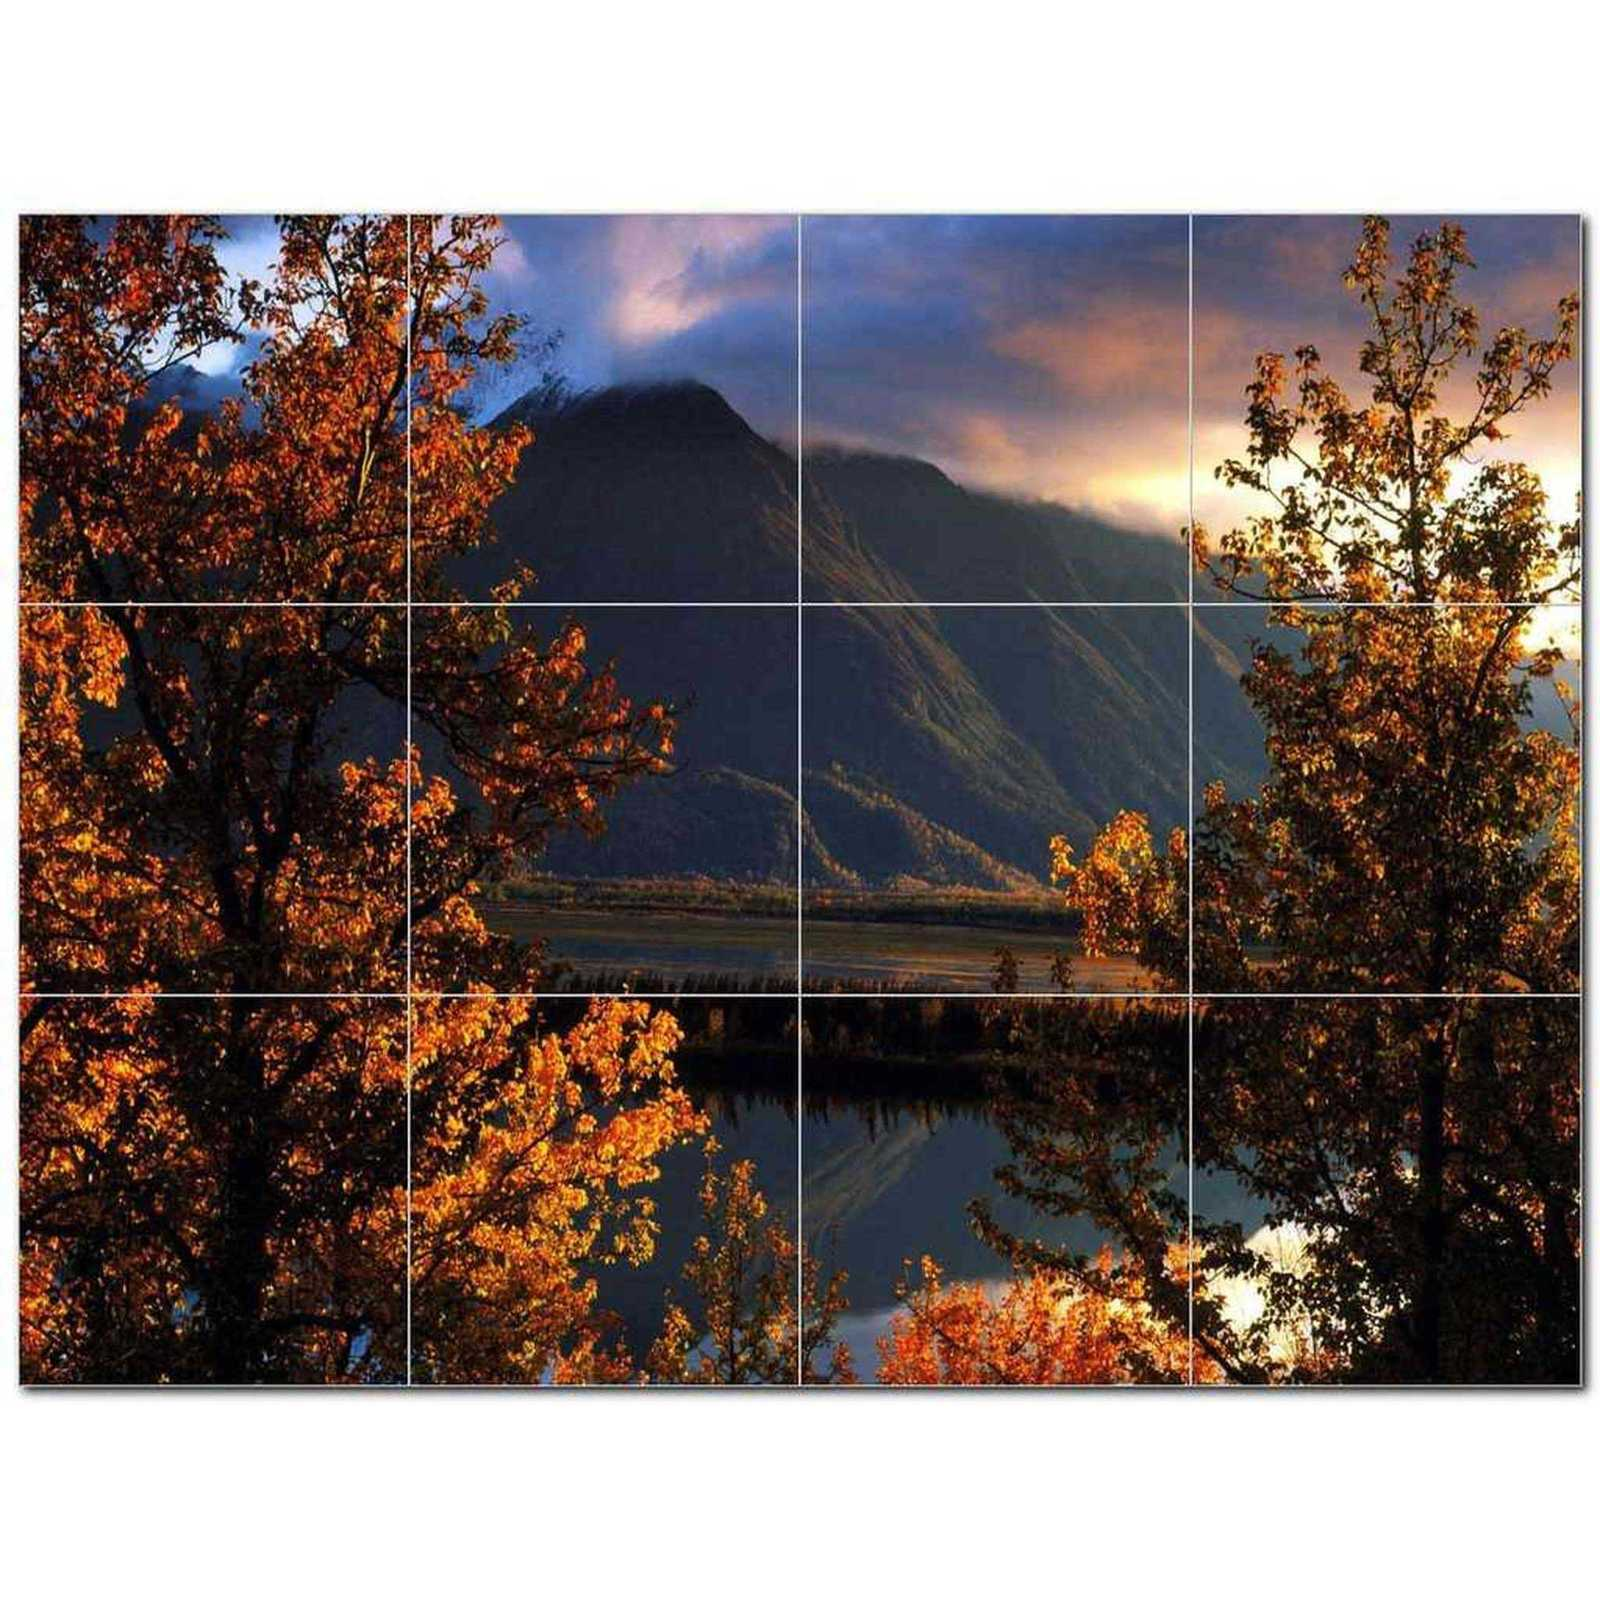 Primary image for Mountain Picture Ceramic Tile Mural Kitchen Backsplash Bathroom Shower BAZ405555